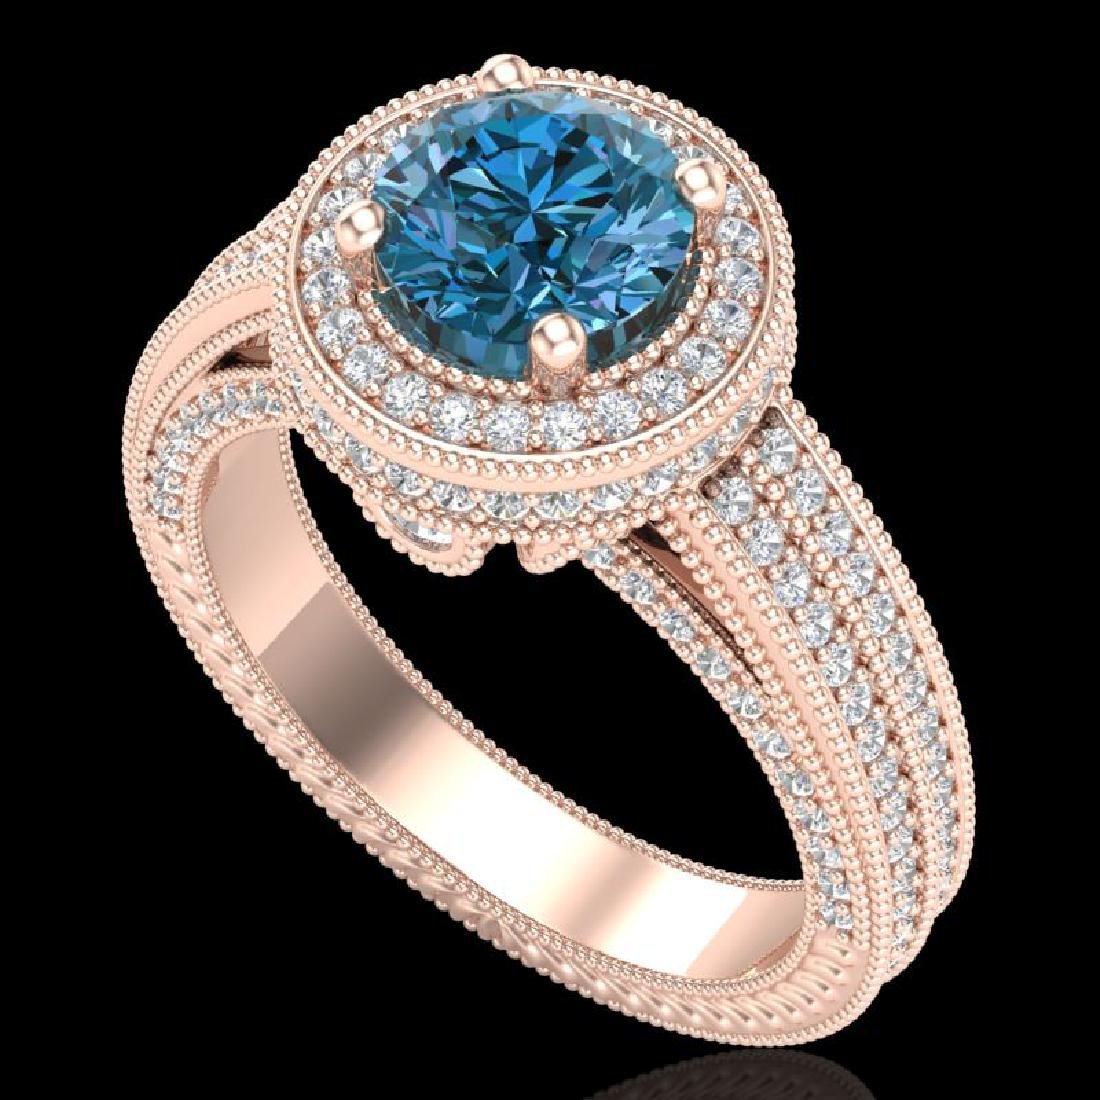 2.8 CTW Intense Blue Diamond Solitaire Engagement Art